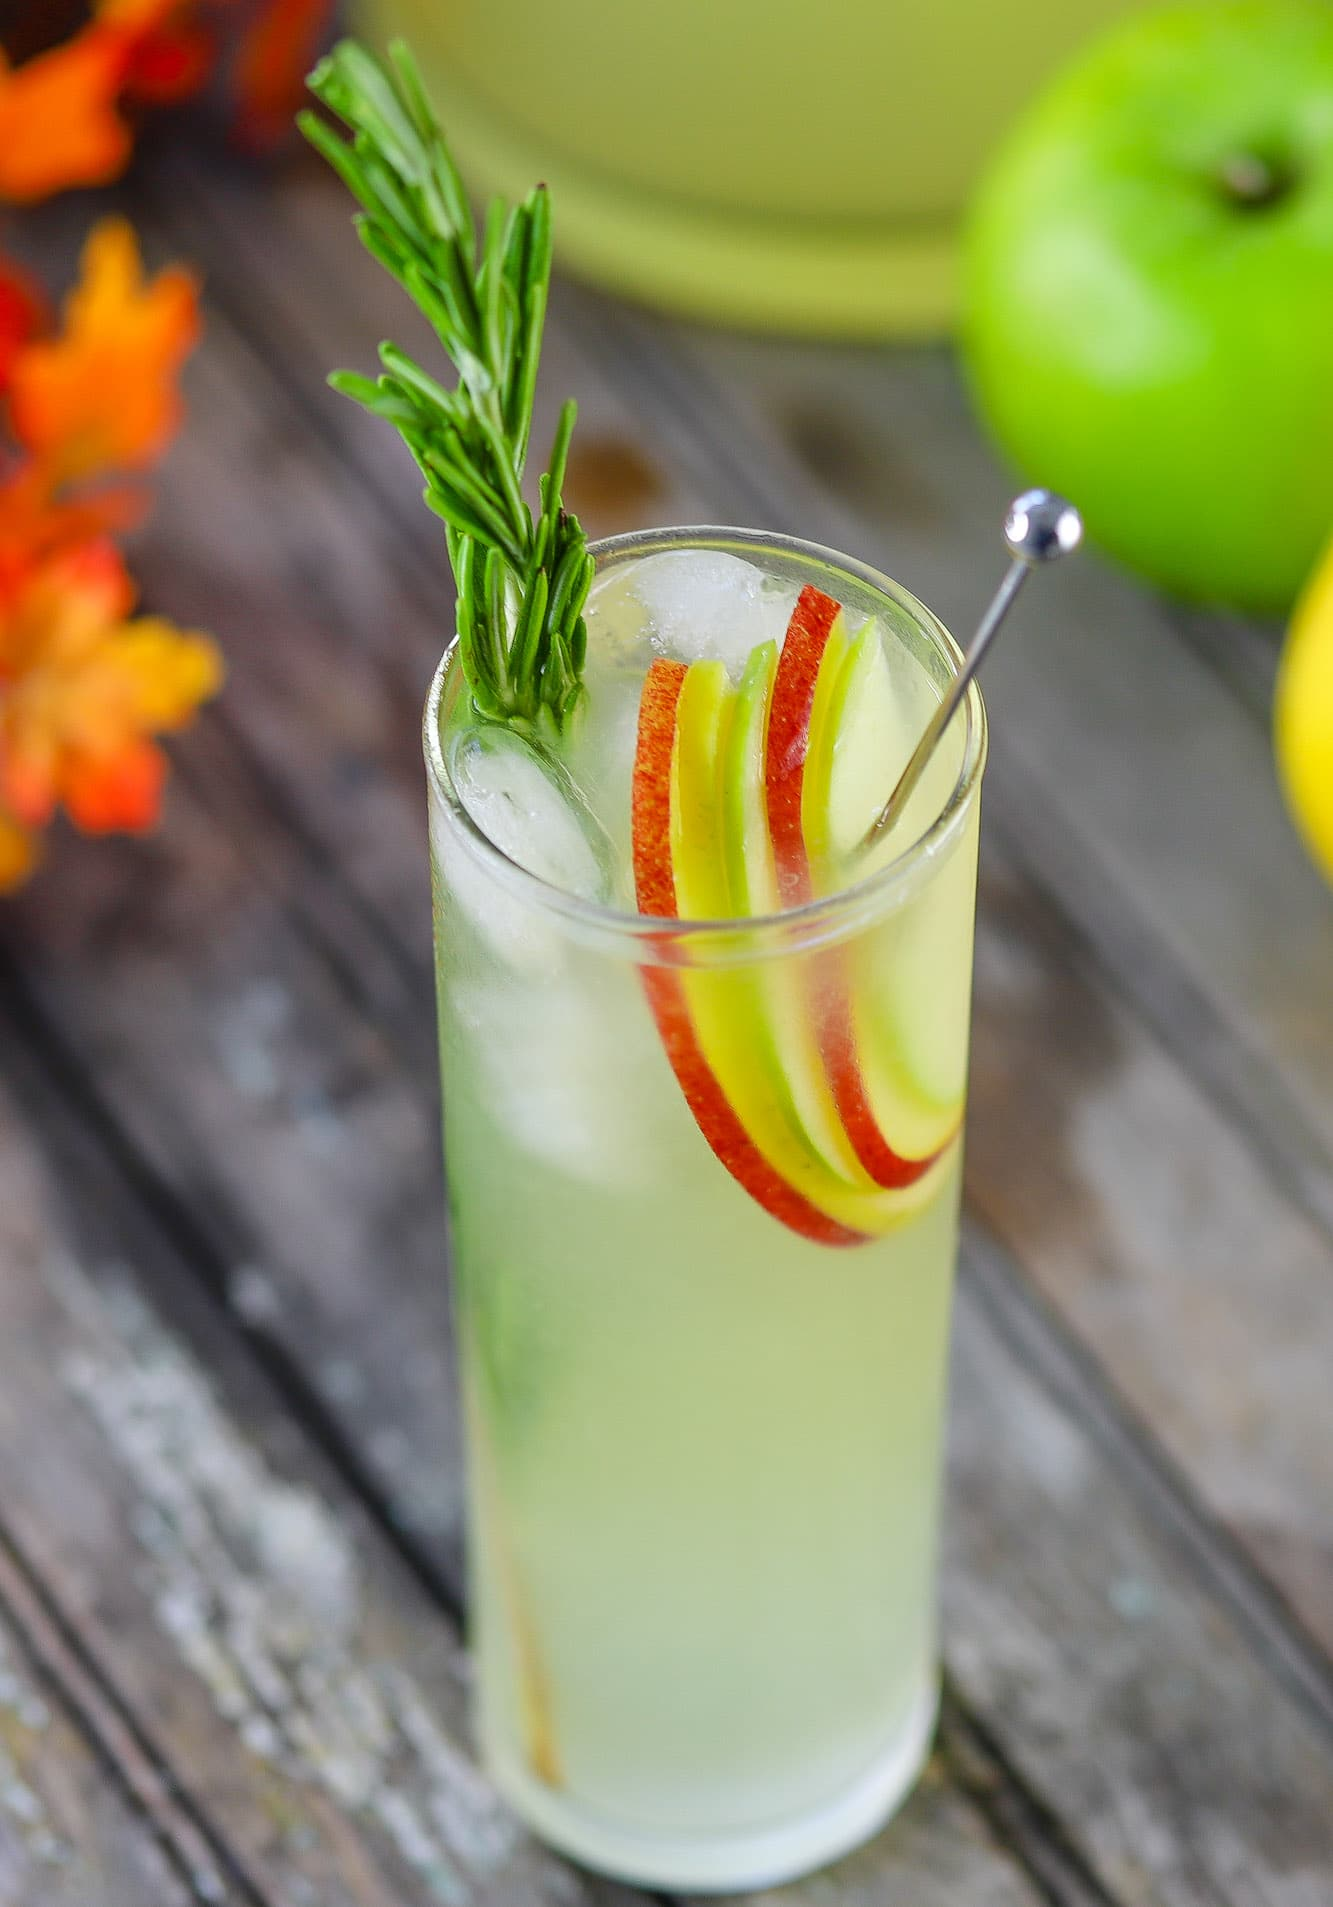 Hard lemonade in glass garnished with apple slices and a sprig of rosemary